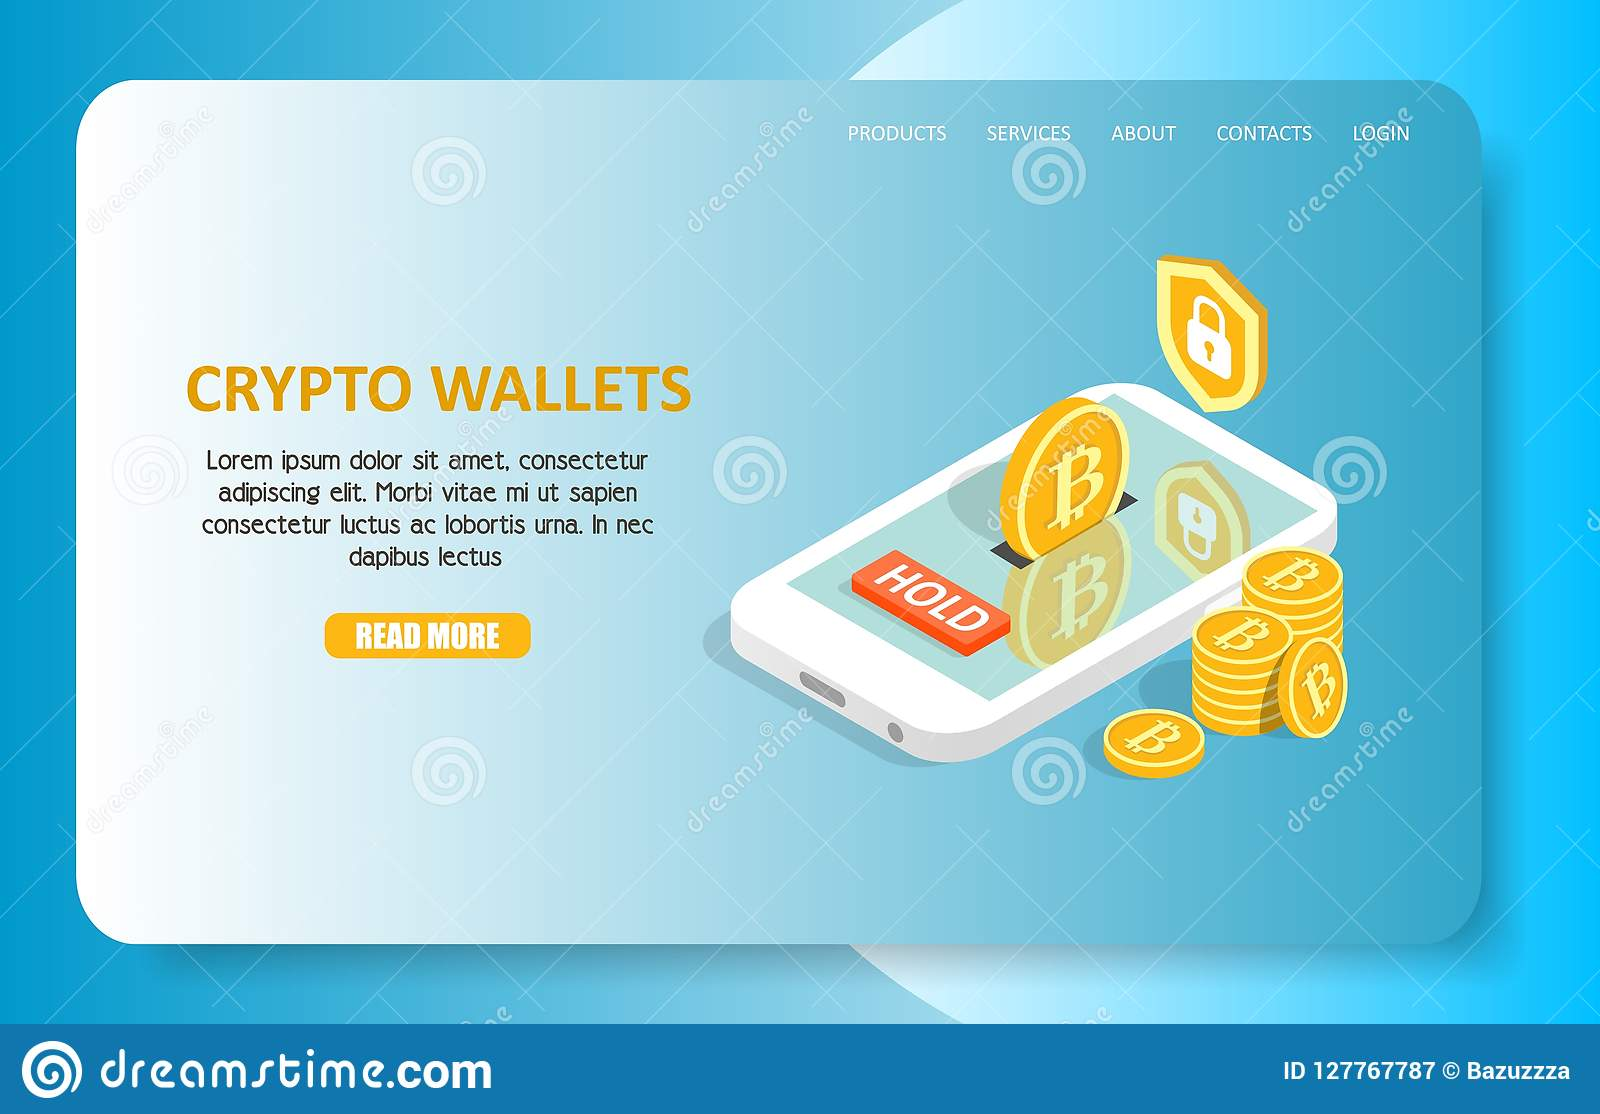 oneline free cryptocurrency wallets